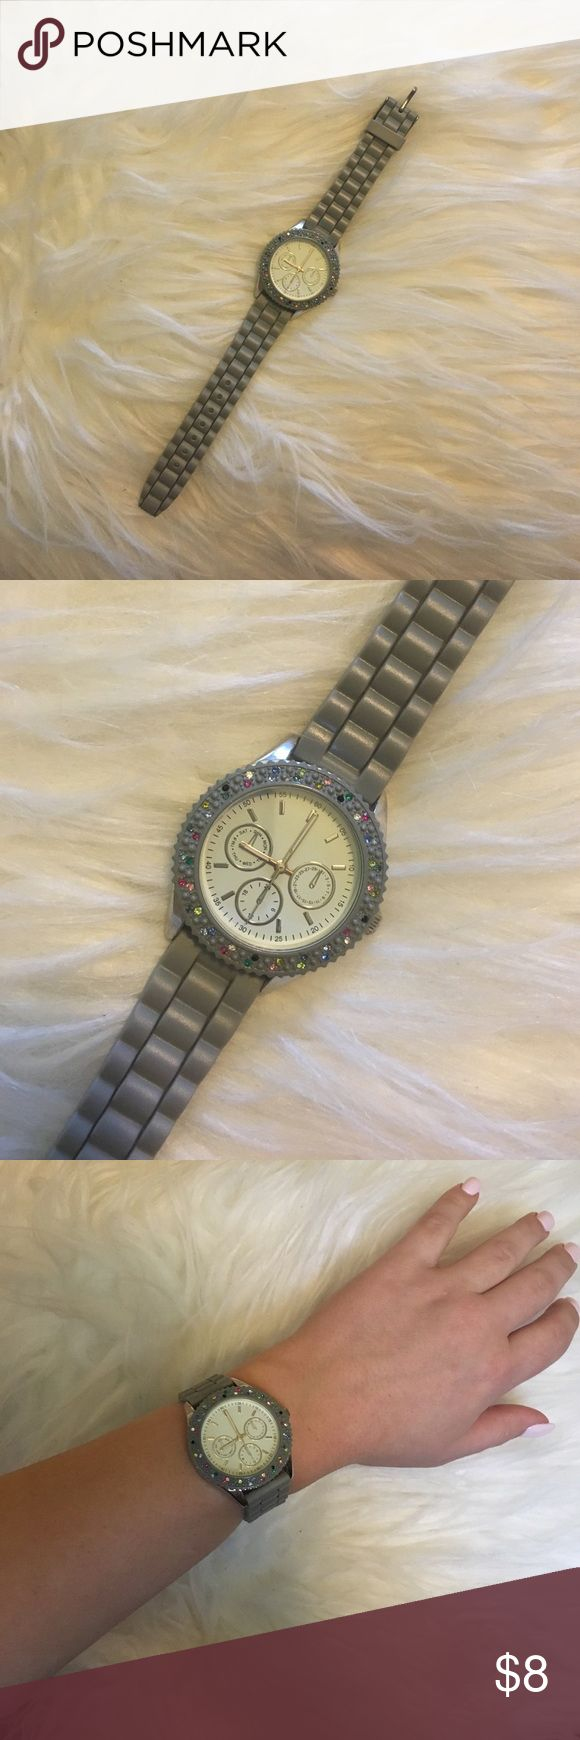 Women's grey and multi color watch Grey band with multi colored rhinestones around face of watch... no missing rhinestones.. needs a new battery, otherwise perfect condition! Accessories Watches